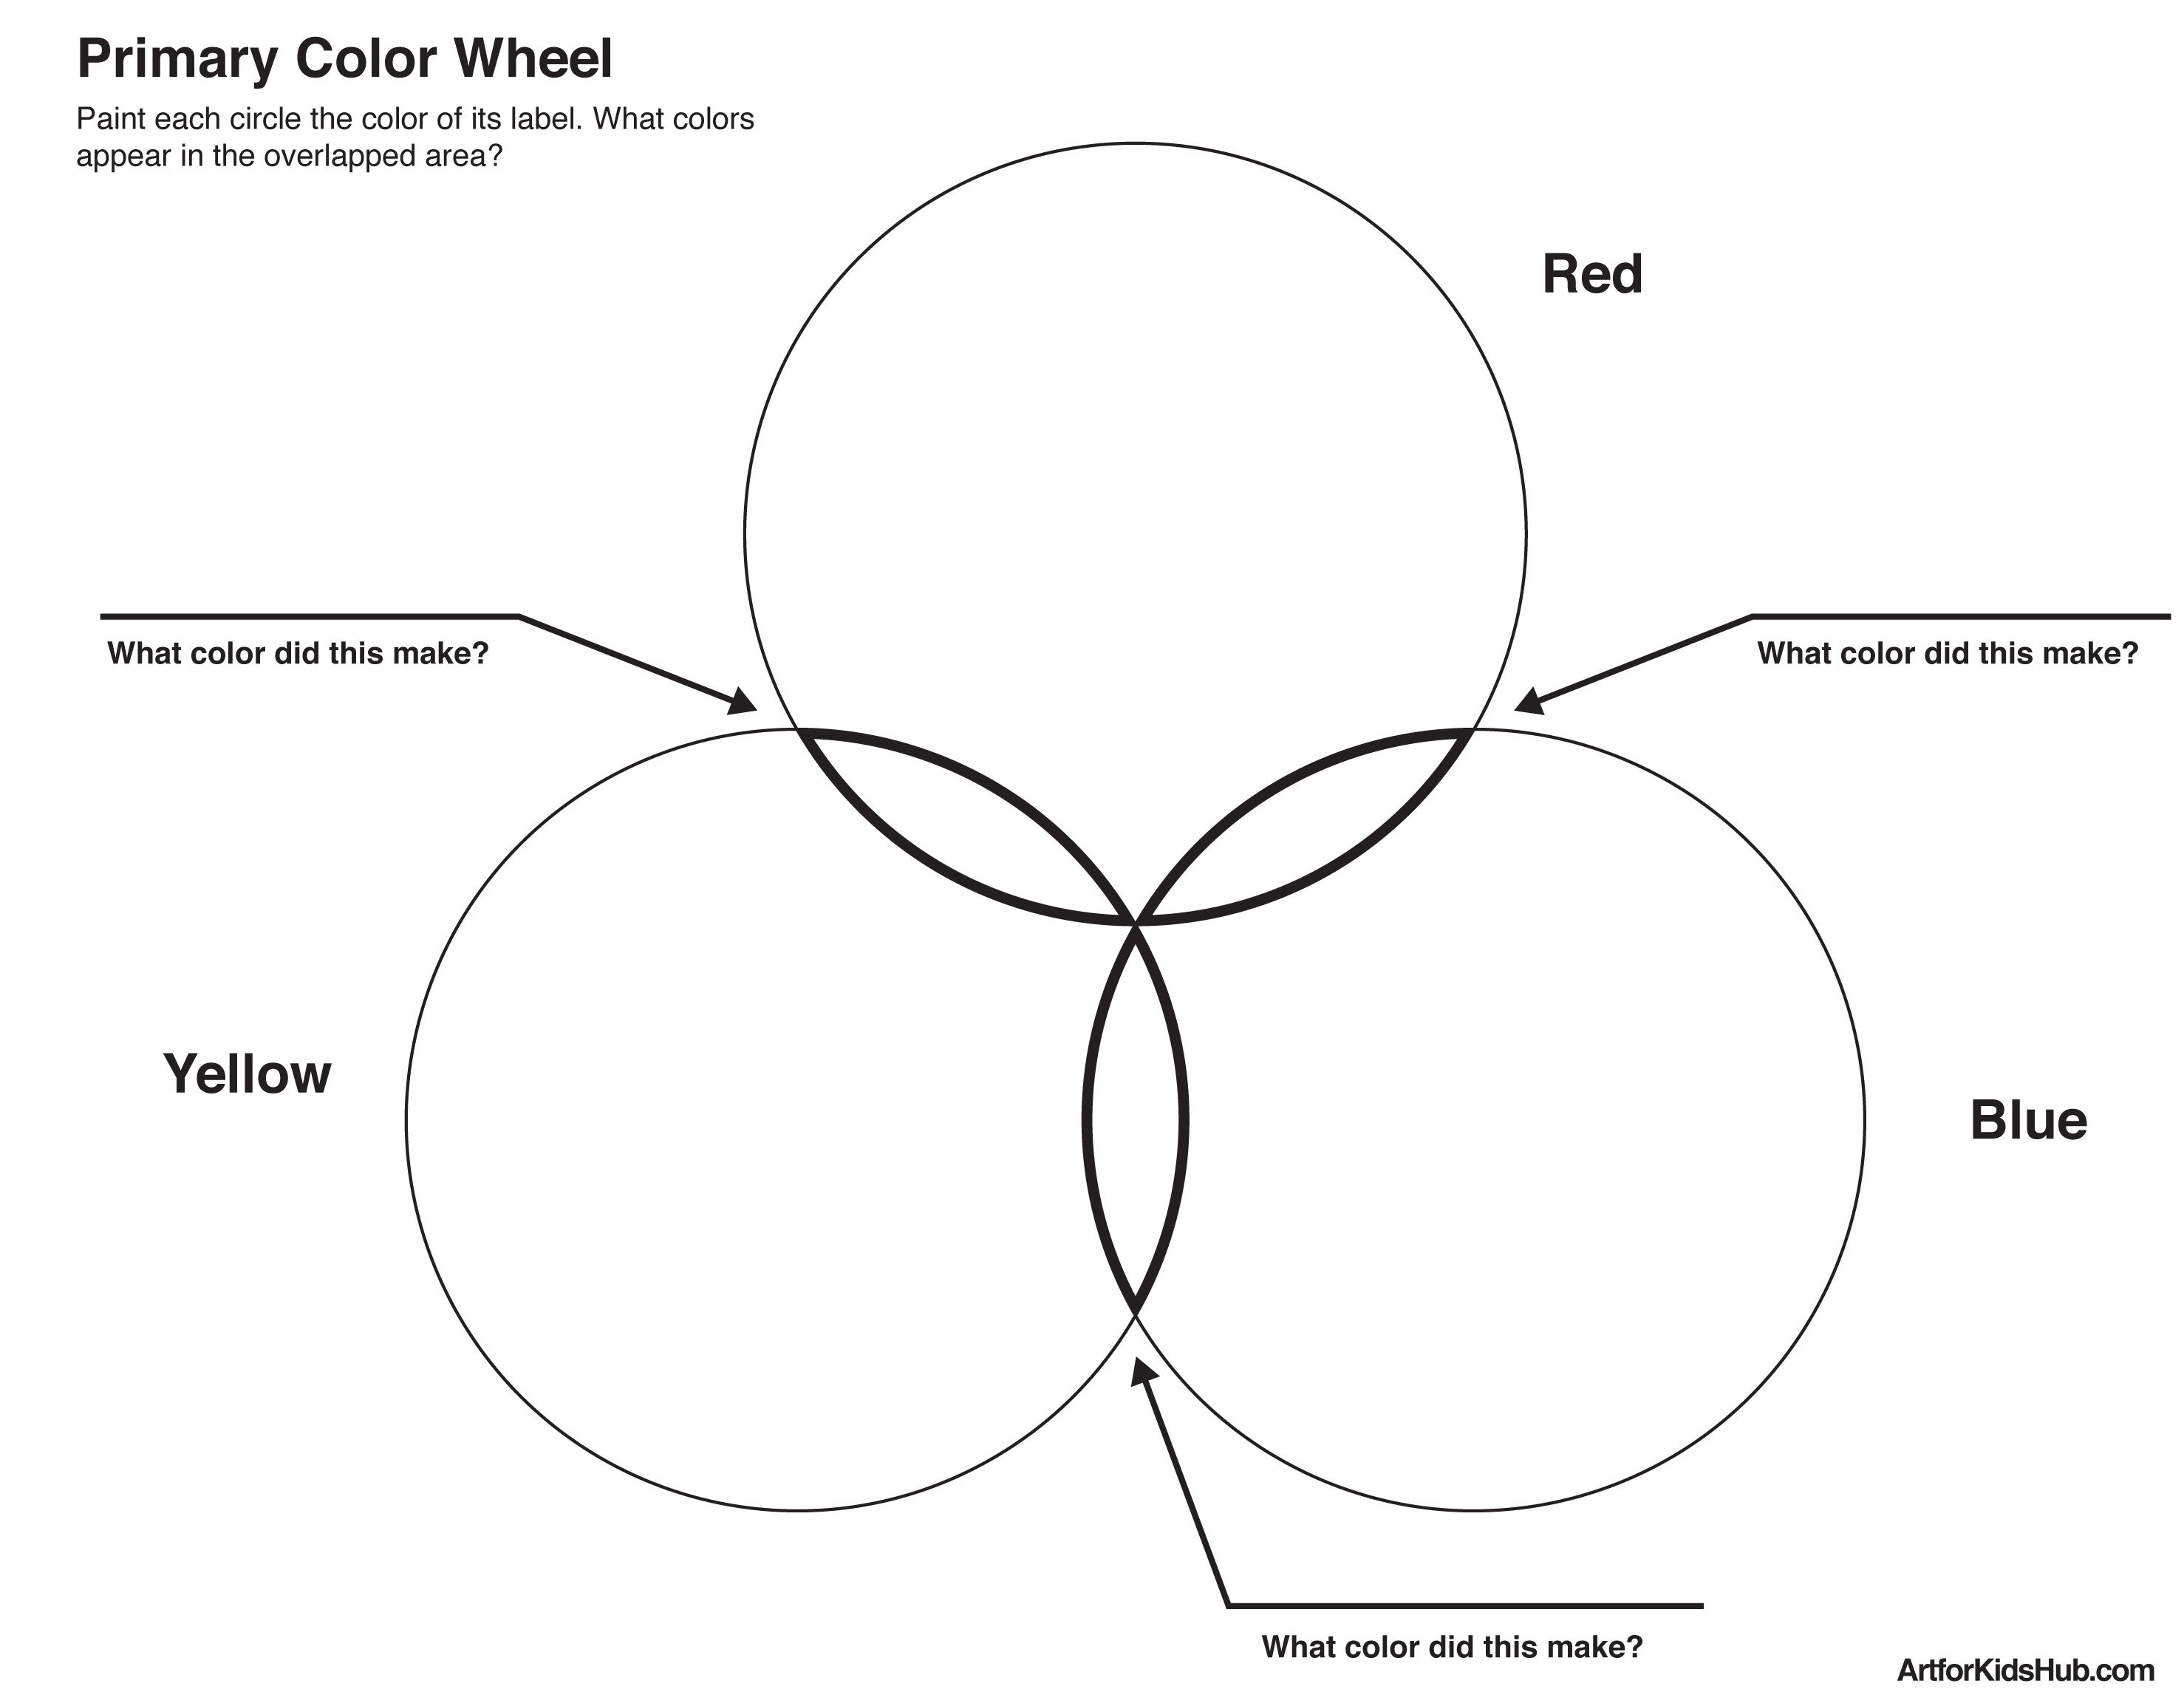 The Basic Primary Wheel With Secondary Color Discovery